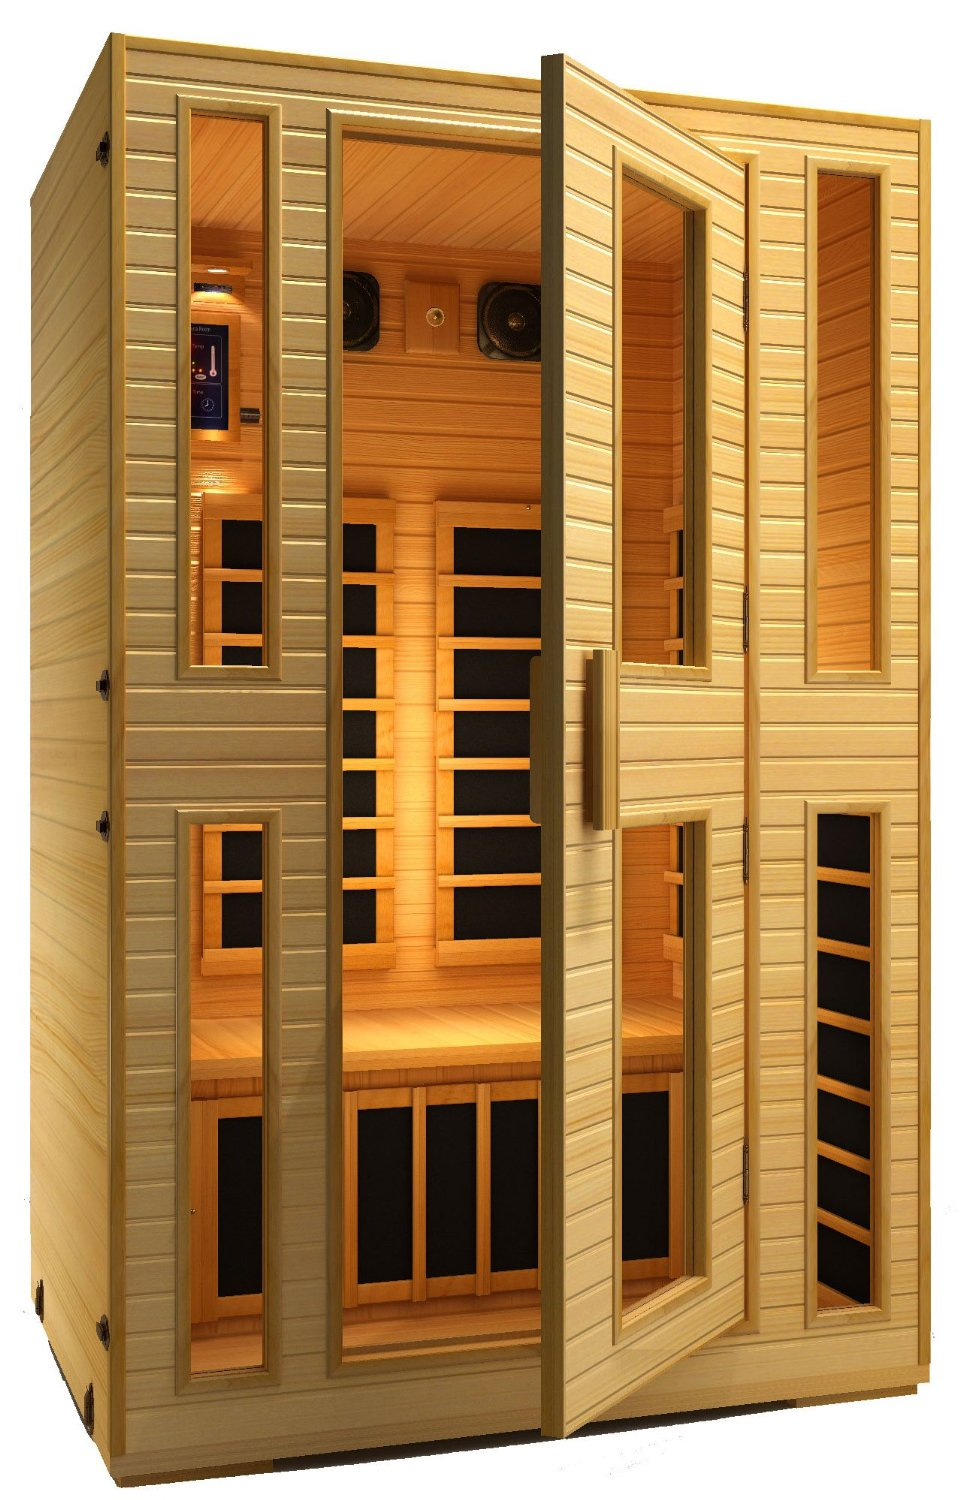 jnh lifestyles 2 person far infrared portable sauna review. Black Bedroom Furniture Sets. Home Design Ideas